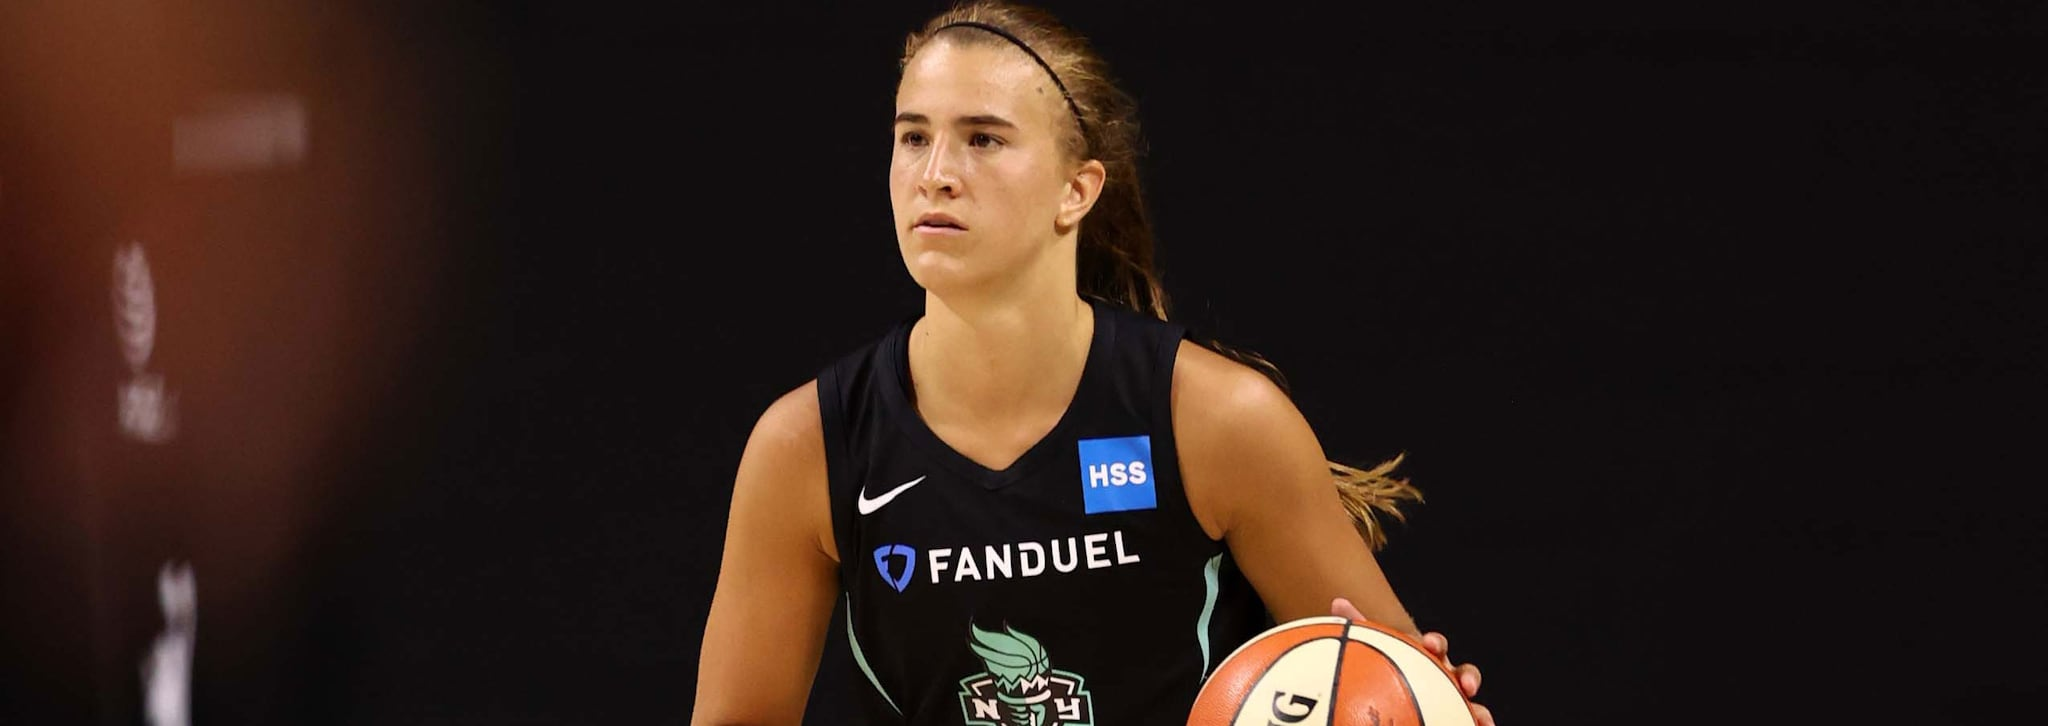 WNBA Announces Broadcast and Streaming Schedule For League's 25th Regular Season - WNBA.com - Official Site of the WNBA